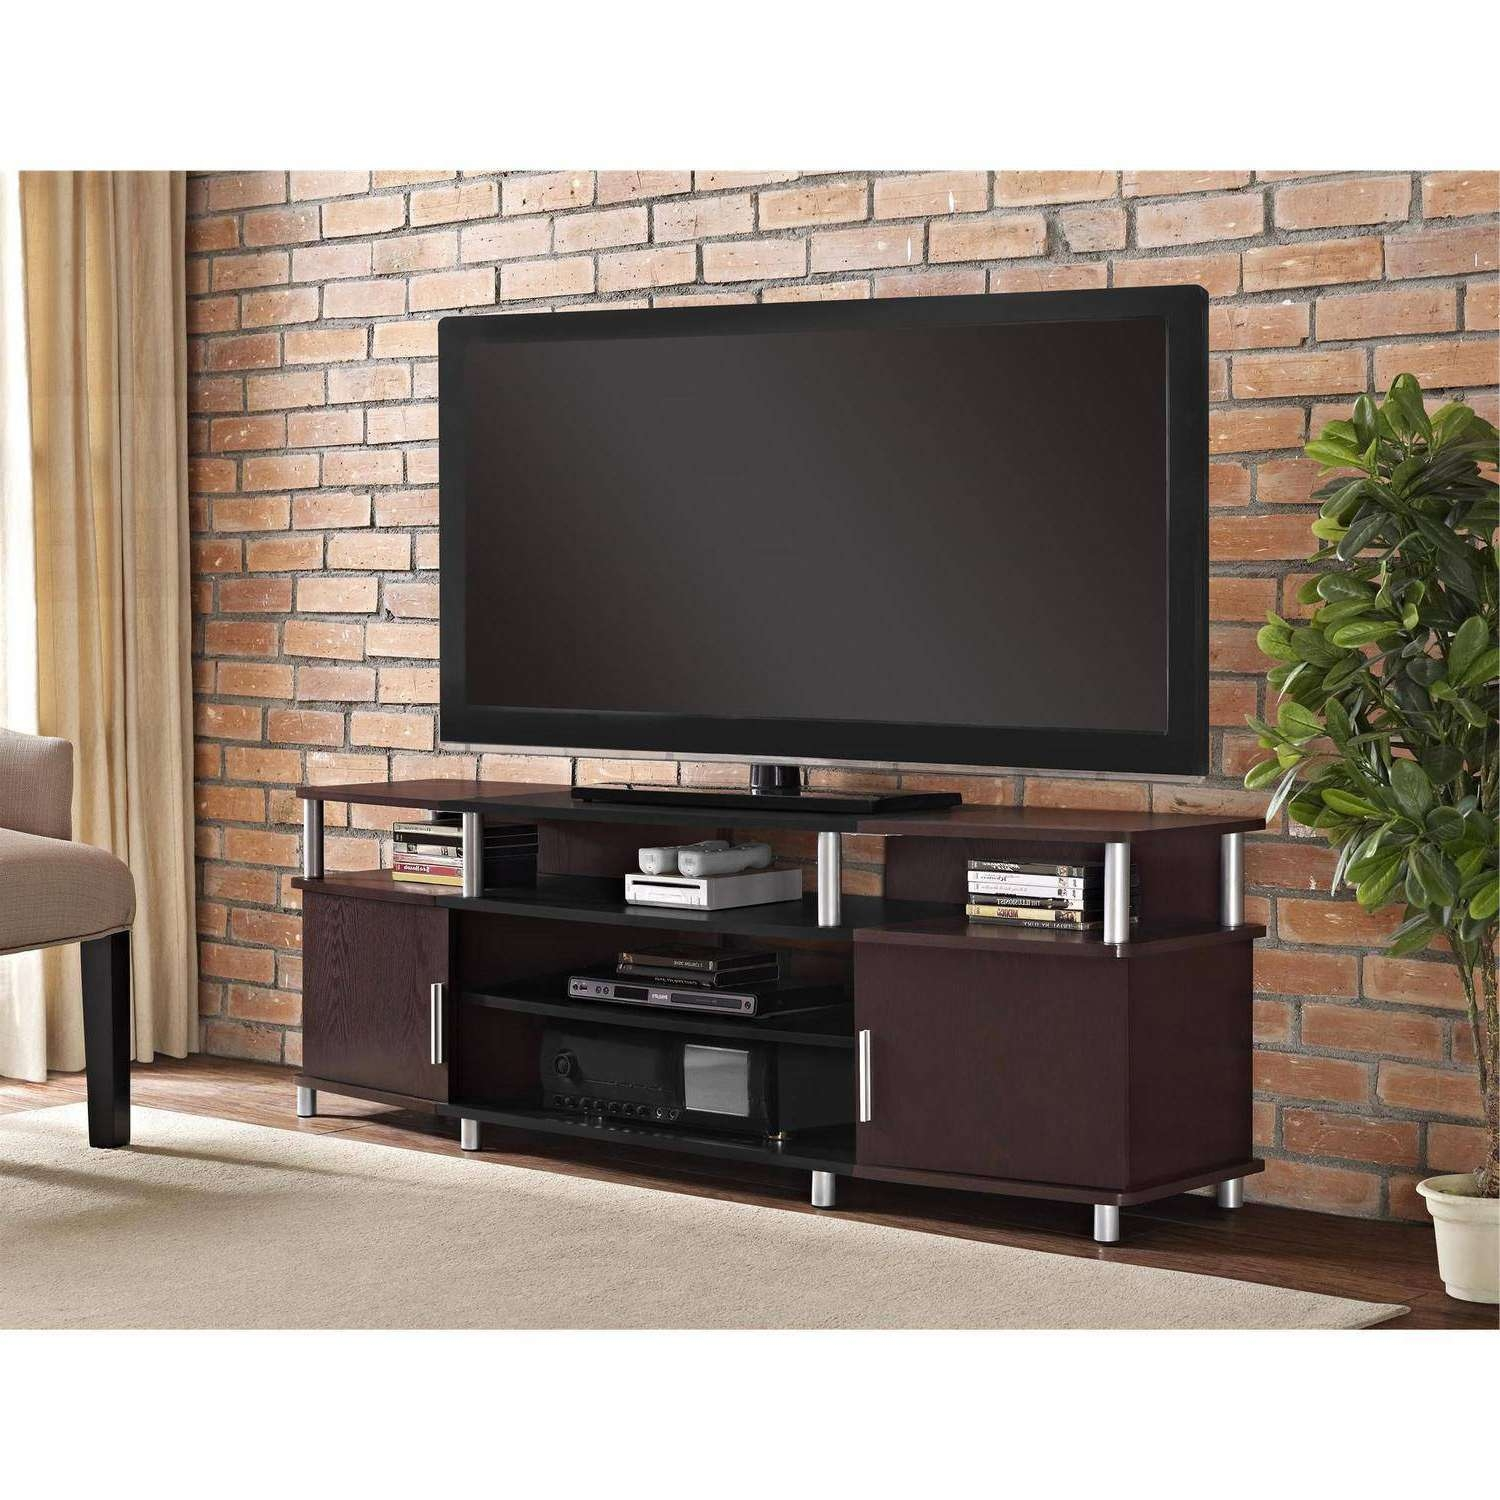 Tv Stands & Entertainment Centers – Walmart Within Black Tv Cabinets With Drawers (View 17 of 20)